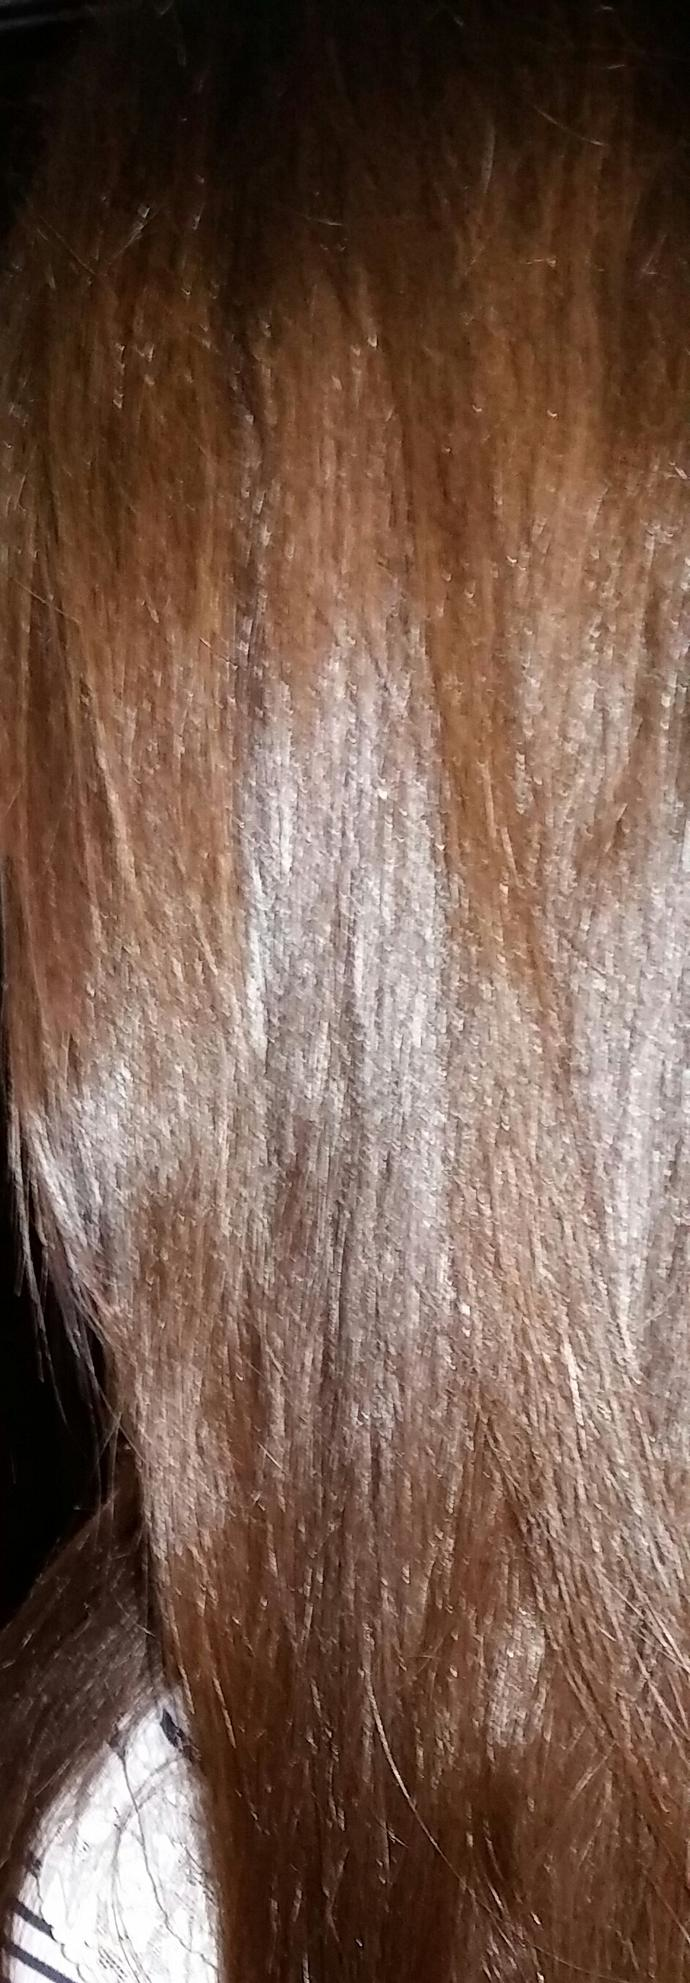 How is my hair color?